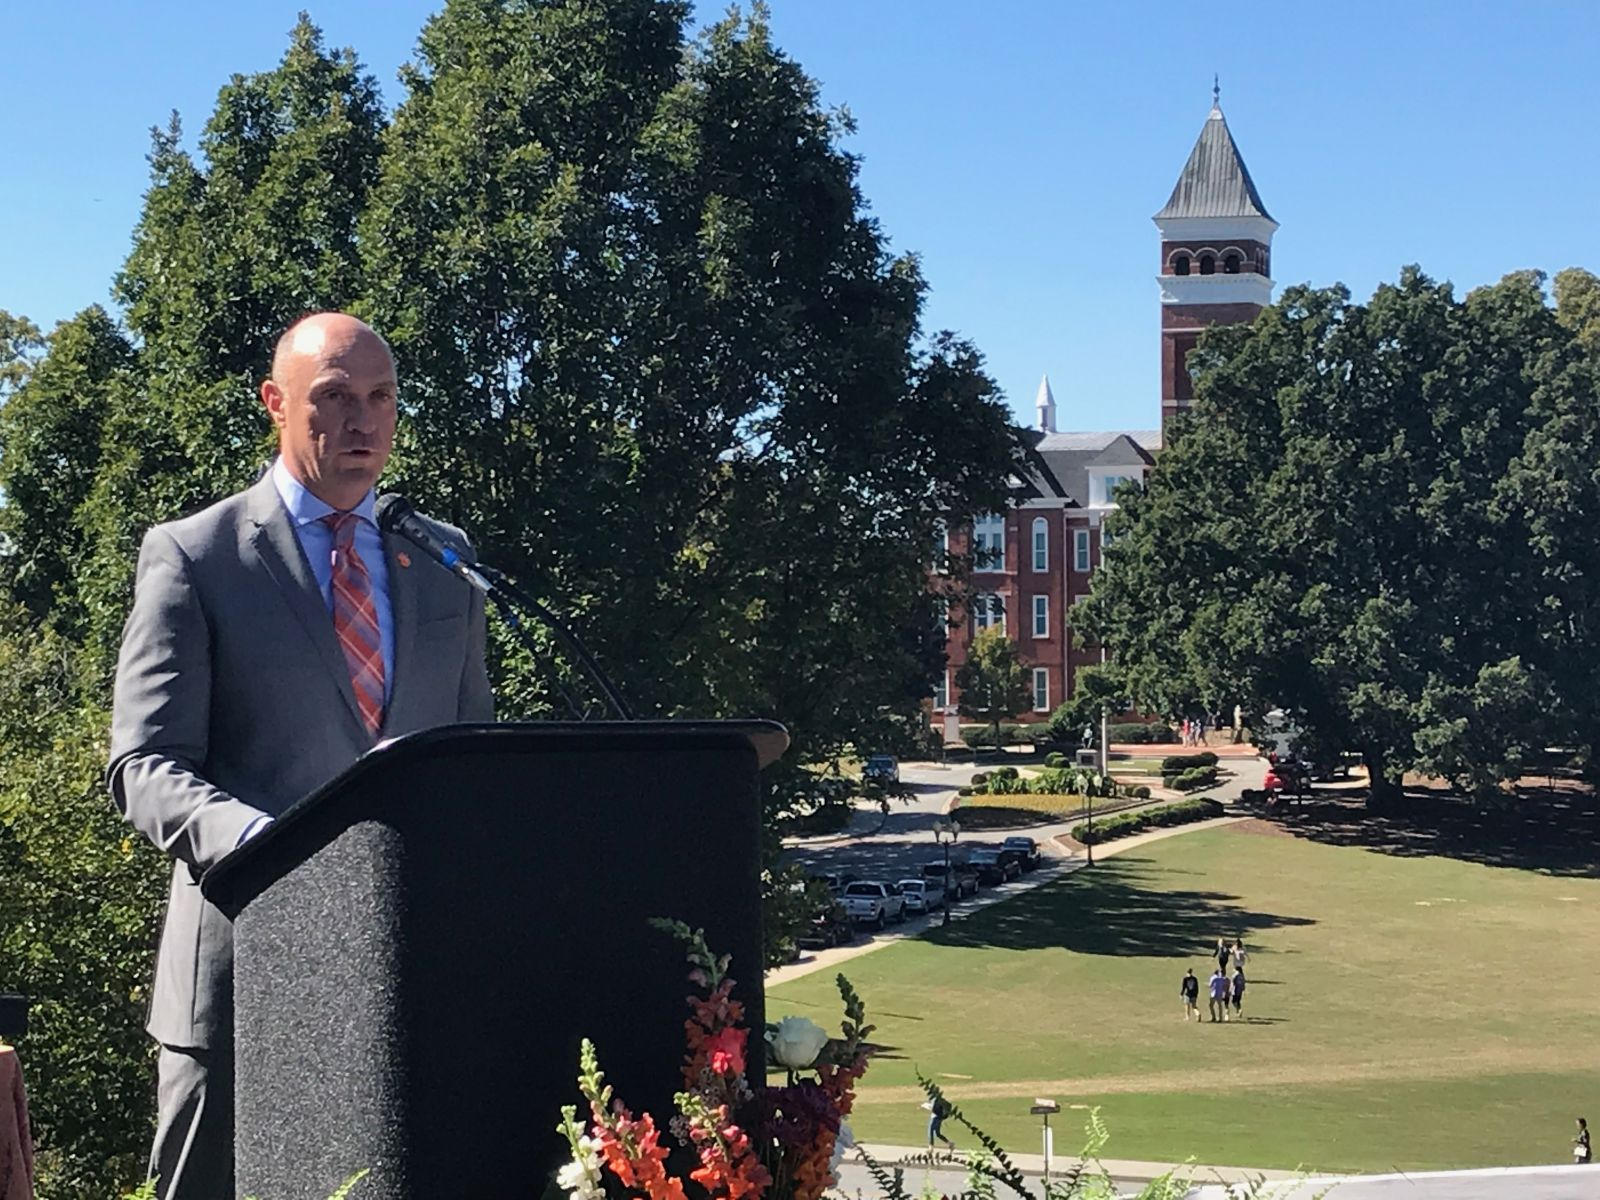 Clemson University President Jim Clements talks about the College of Business' $85 million building during a groundbreaking. (Photo/Teresa Cutlip)